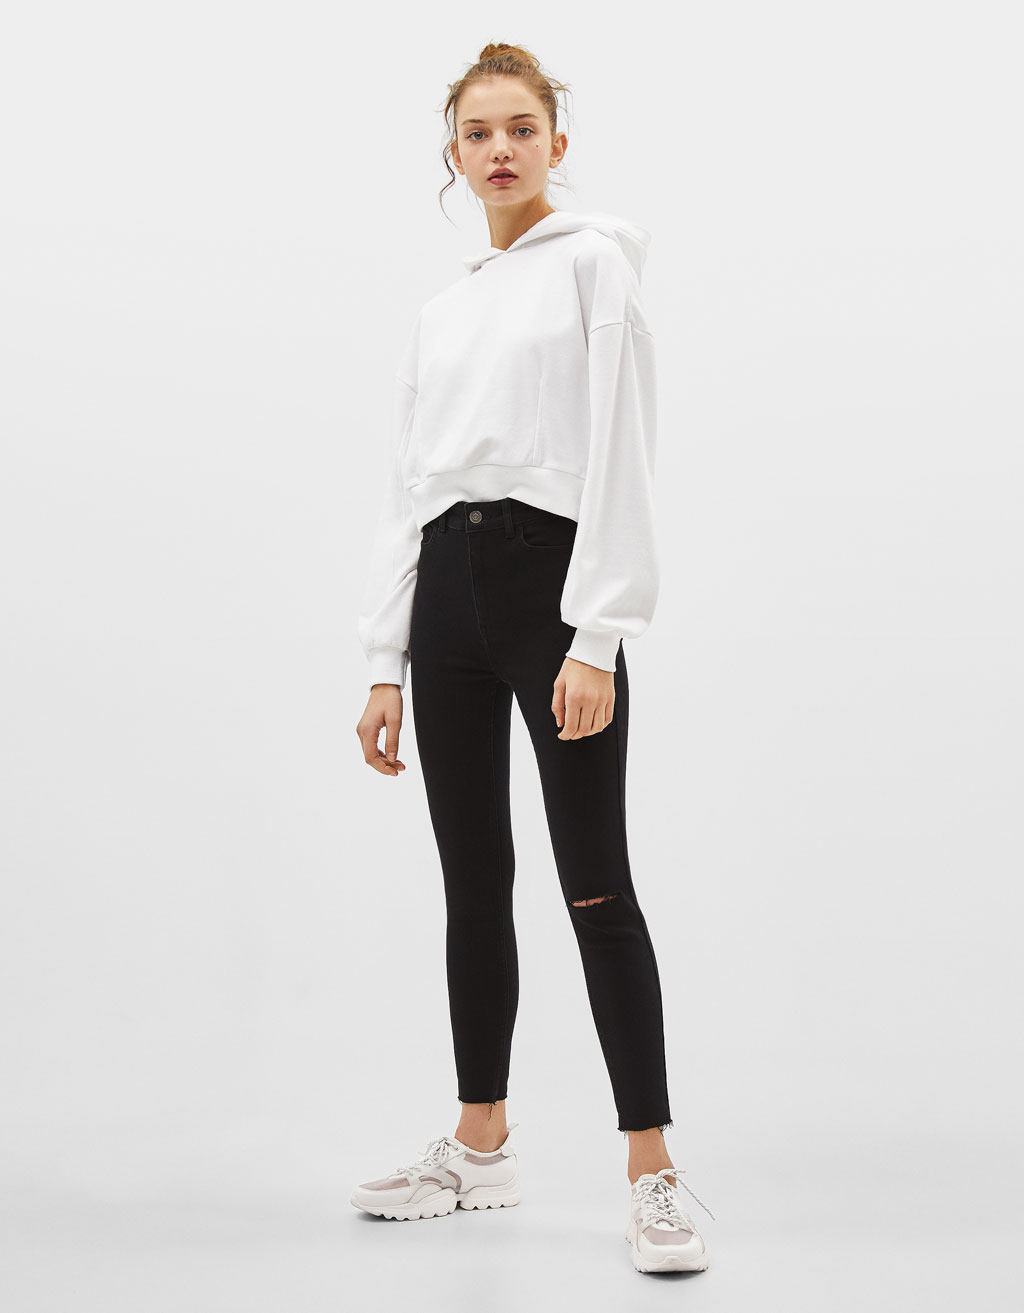 Cropped galtza bakeroak, Skinny Super High Waist